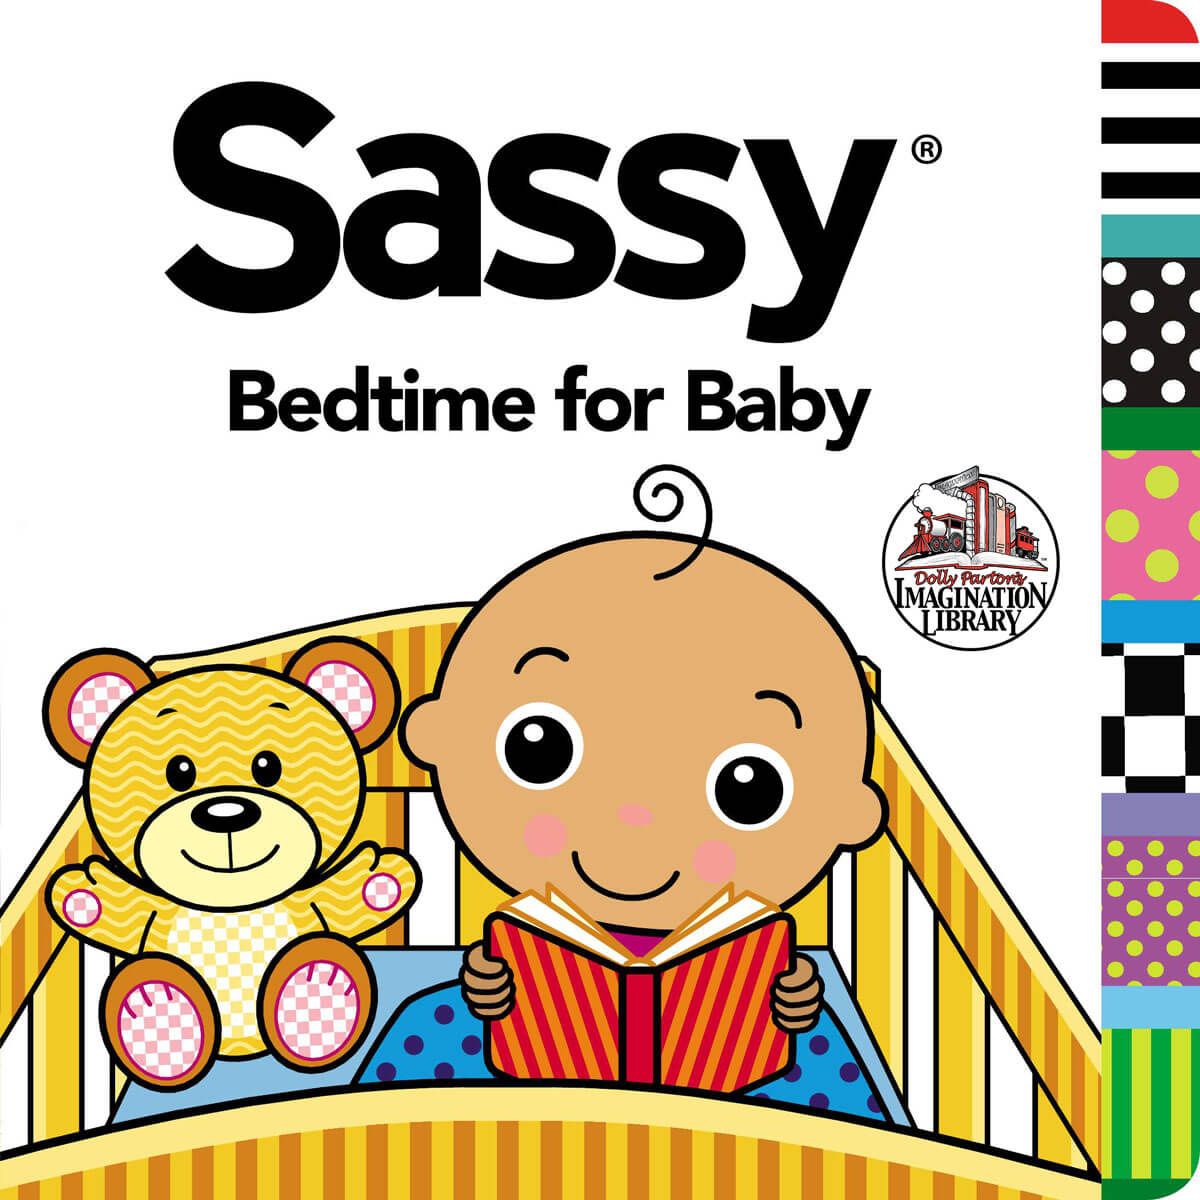 Sassy Bedtime for Baby